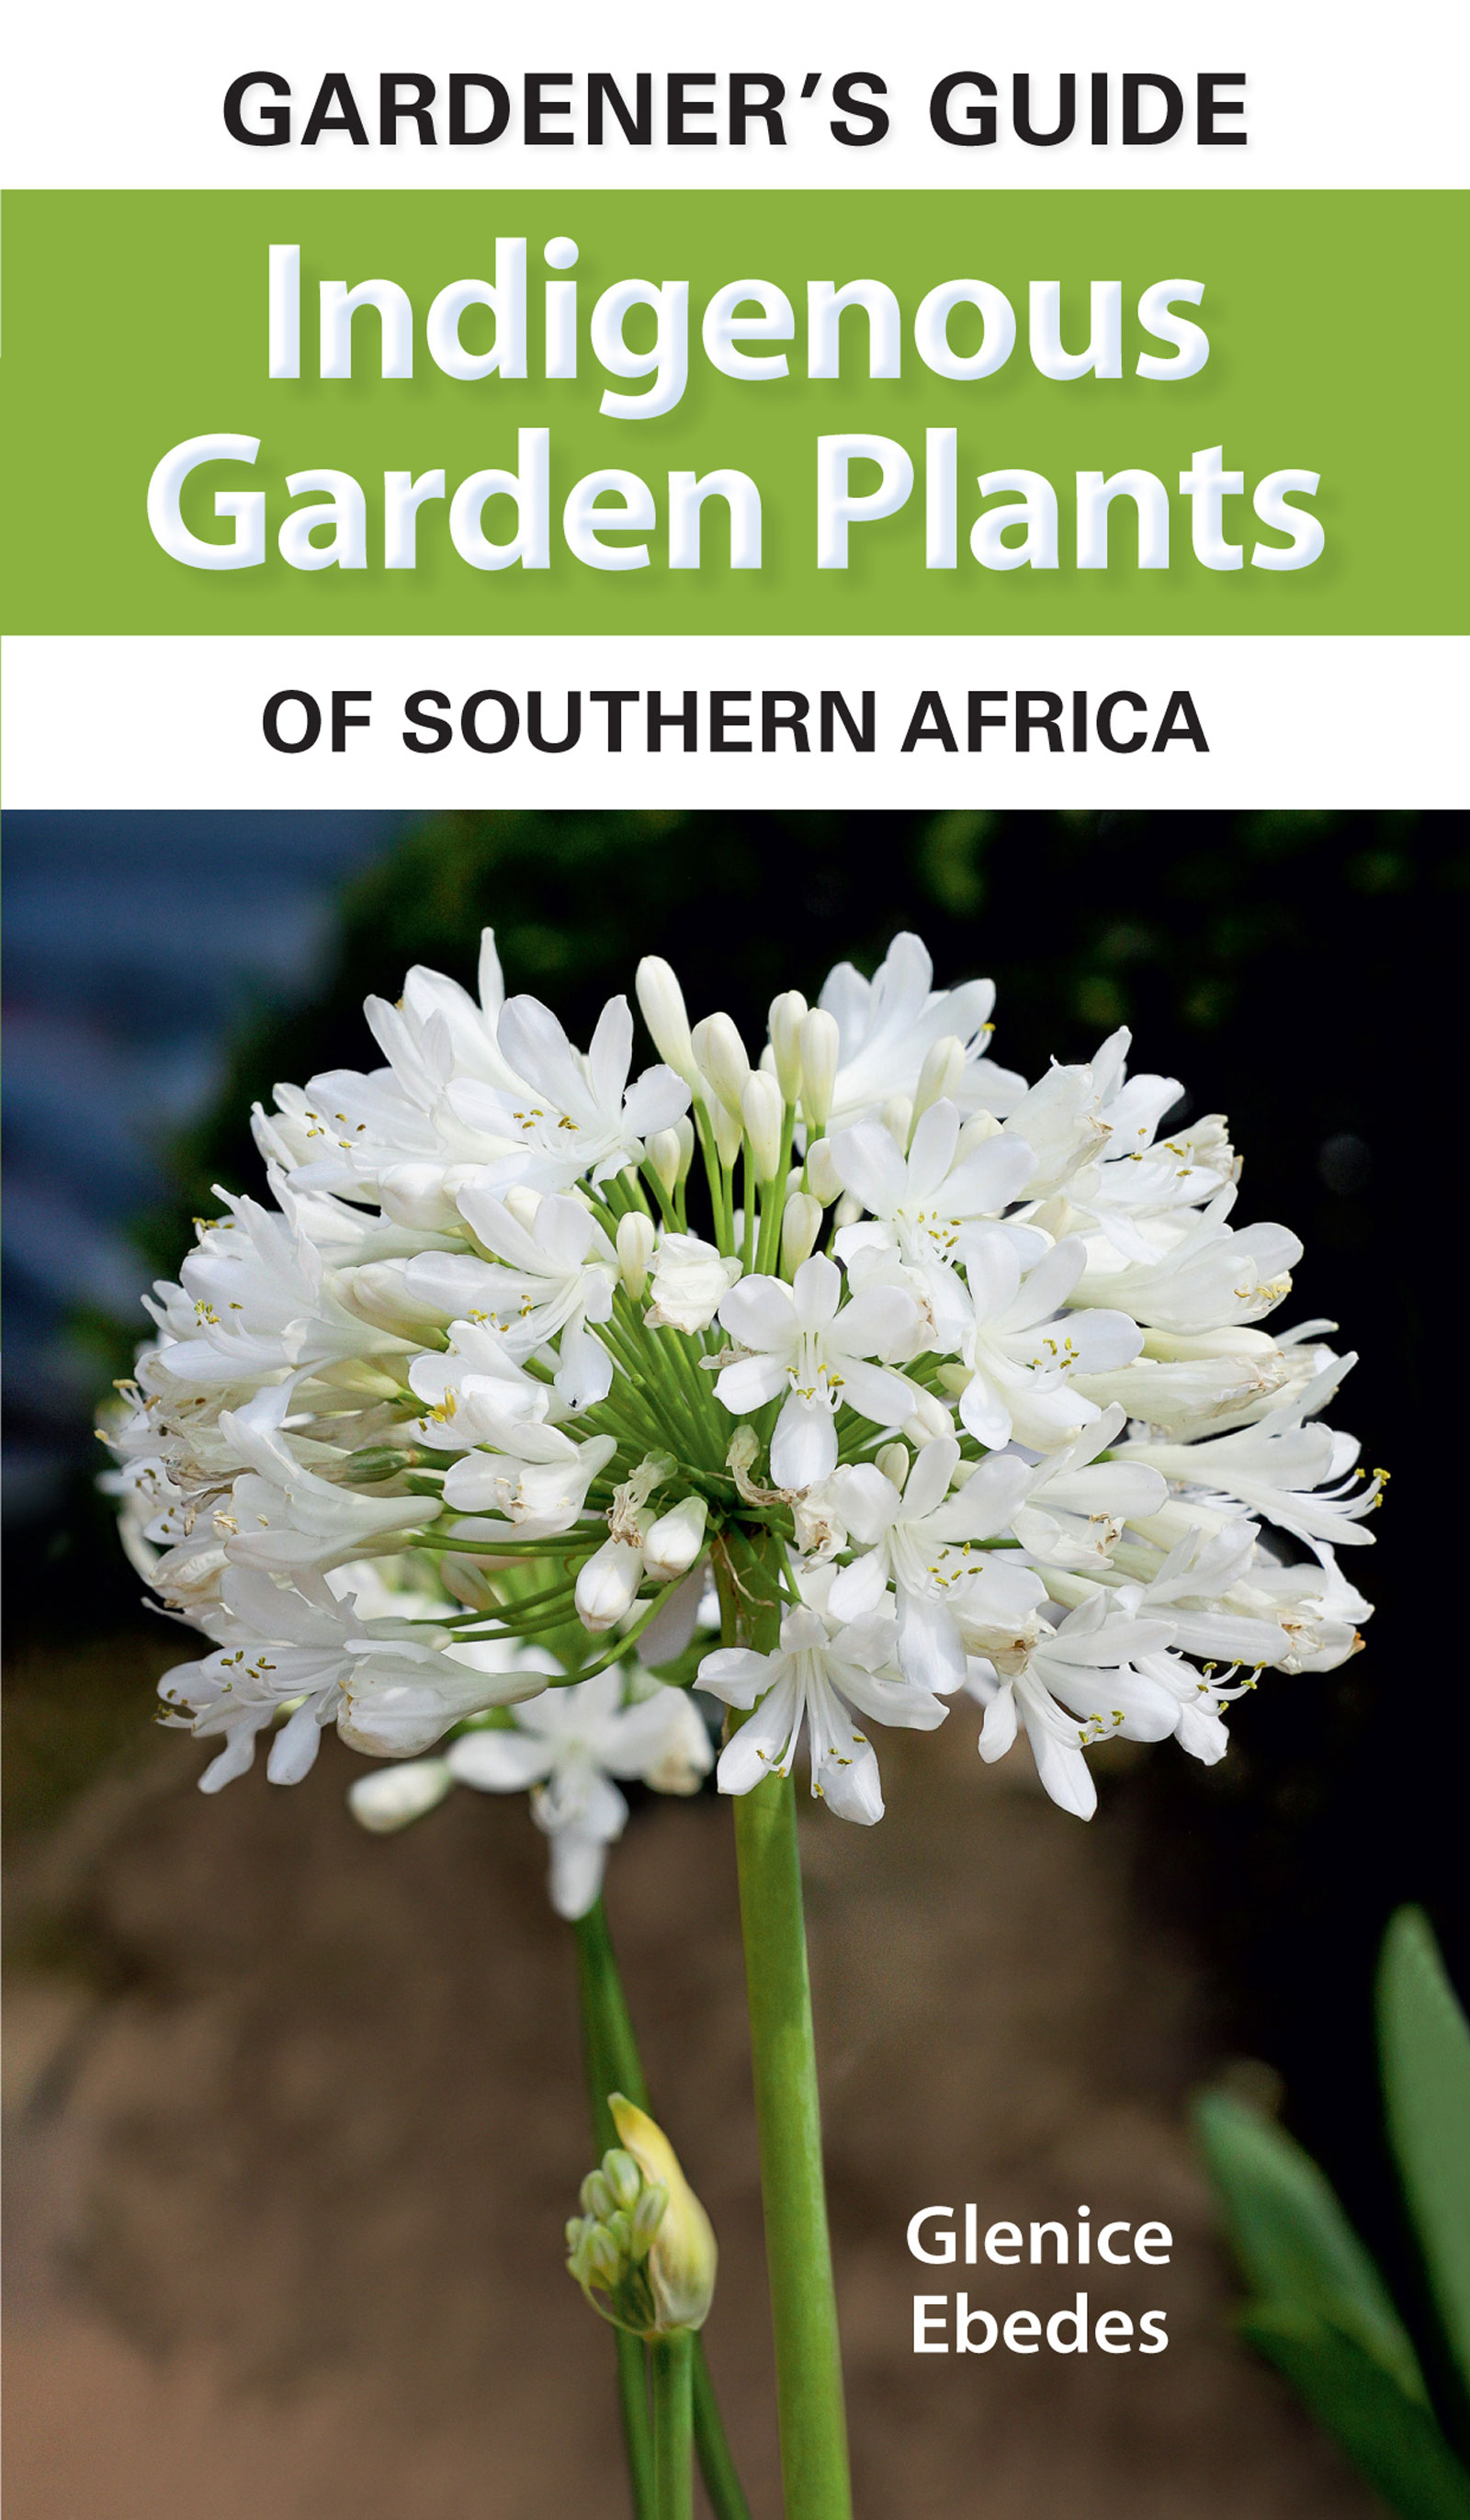 Picture of Gardener's guide indigenous garden plants of southern Africa